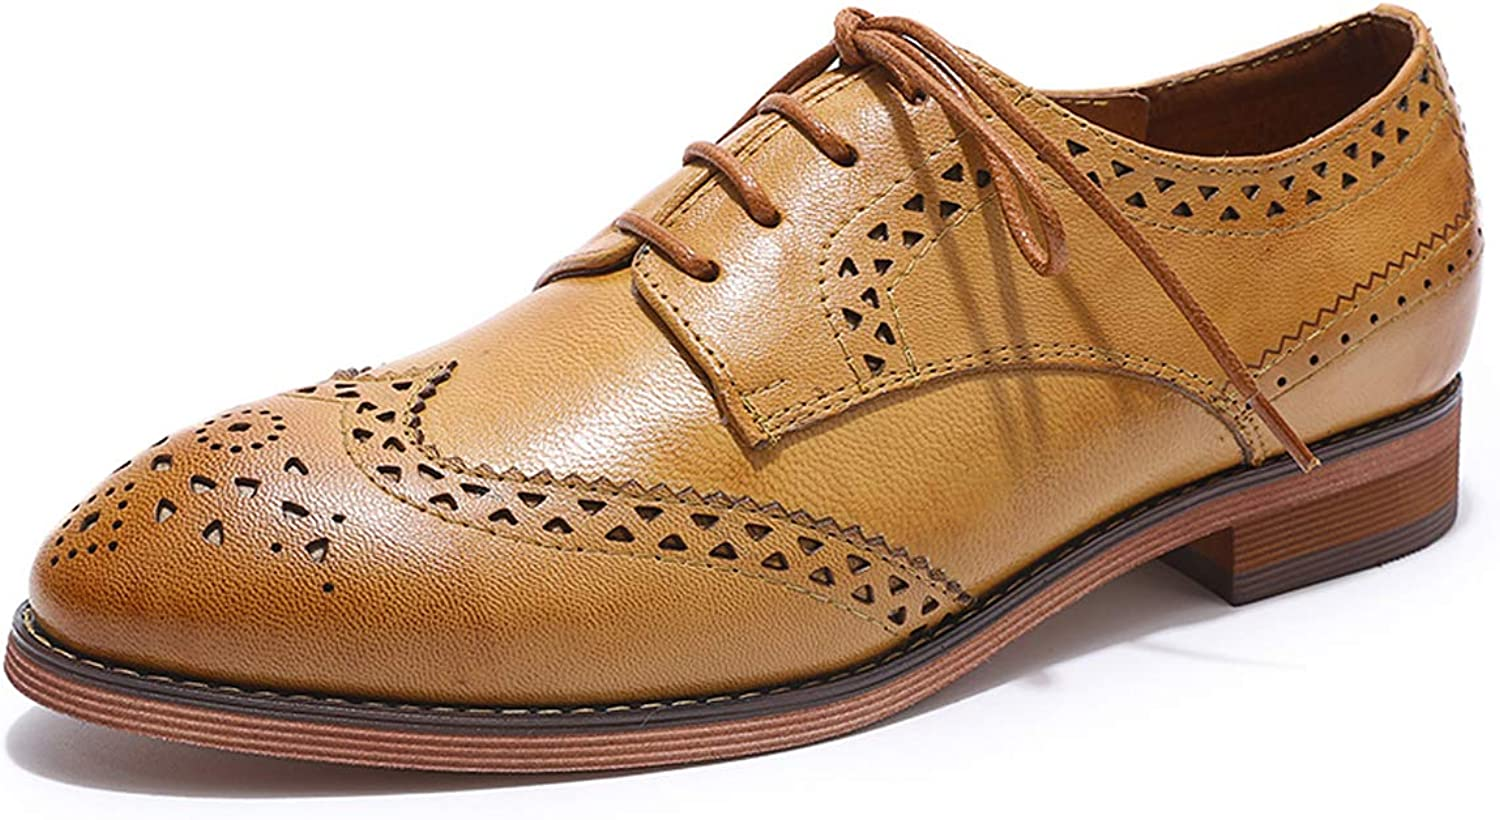 MIKCON Women's Leather Perforated Lace-up Oxfords shoes for Women Wingtip Multicolor Brougue shoes